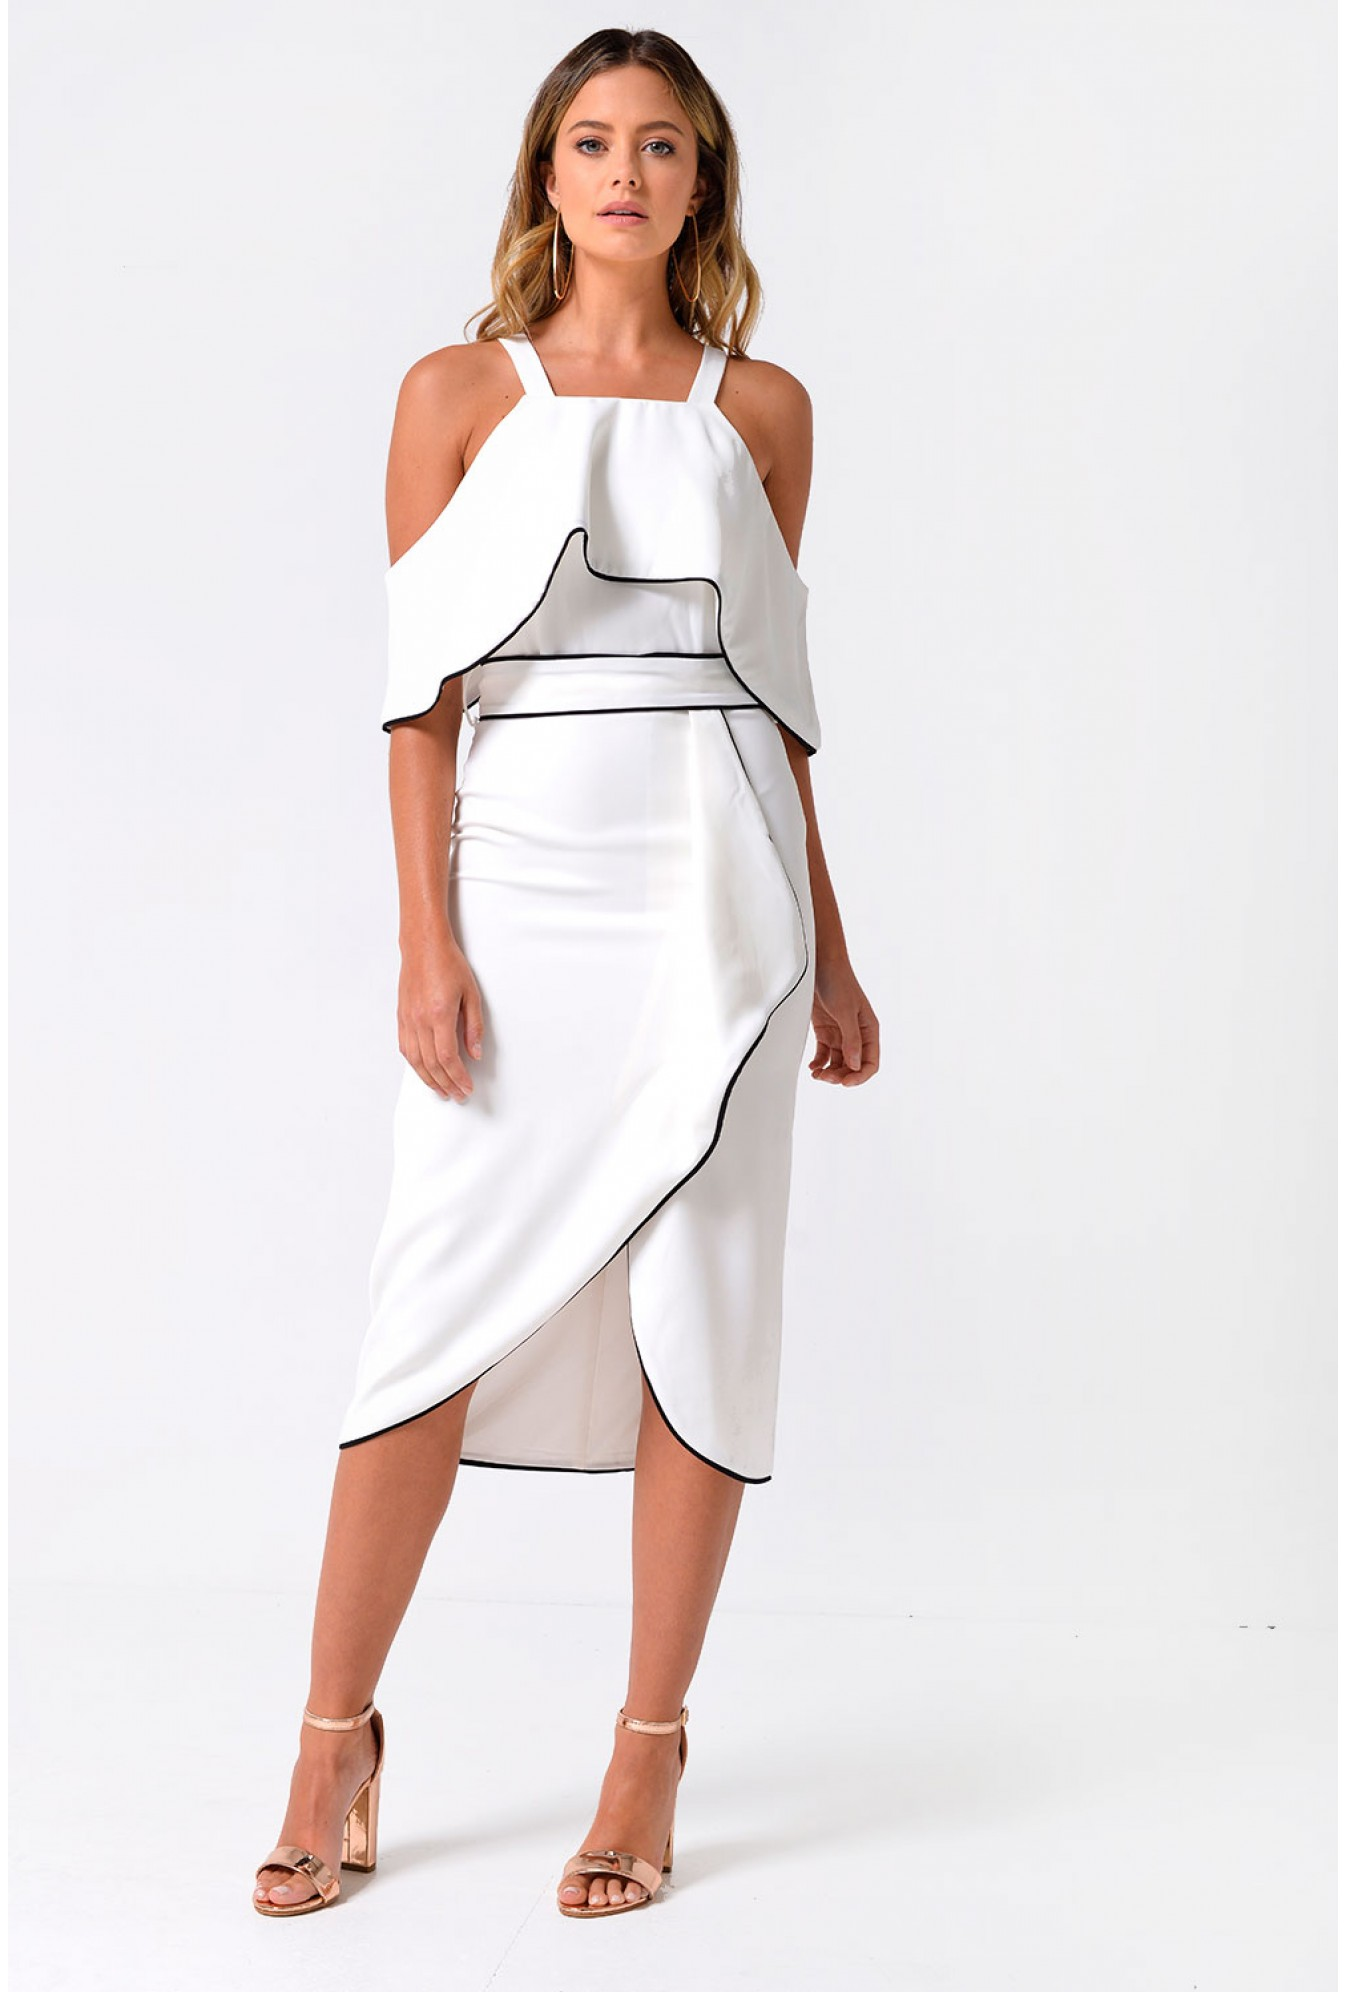 300b5de8c4ab68 More Views. Lola Off Shoulder Contrast Piping Dress in White. Video  Gallery. Lavish Alice